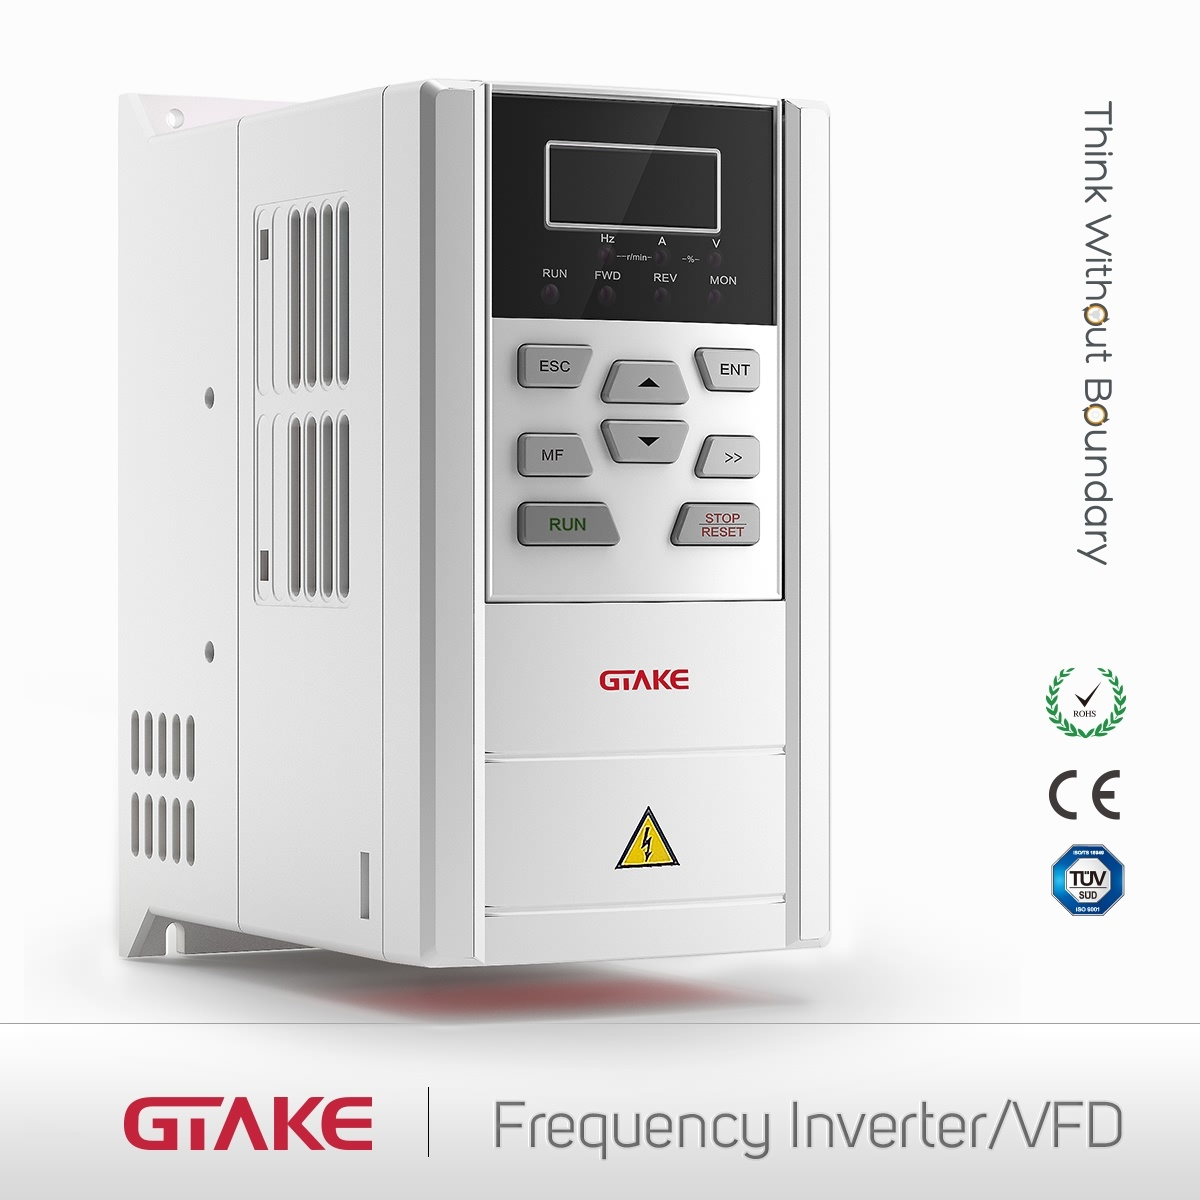 Gk800 High Performance Frequency Inverter for CNC Application